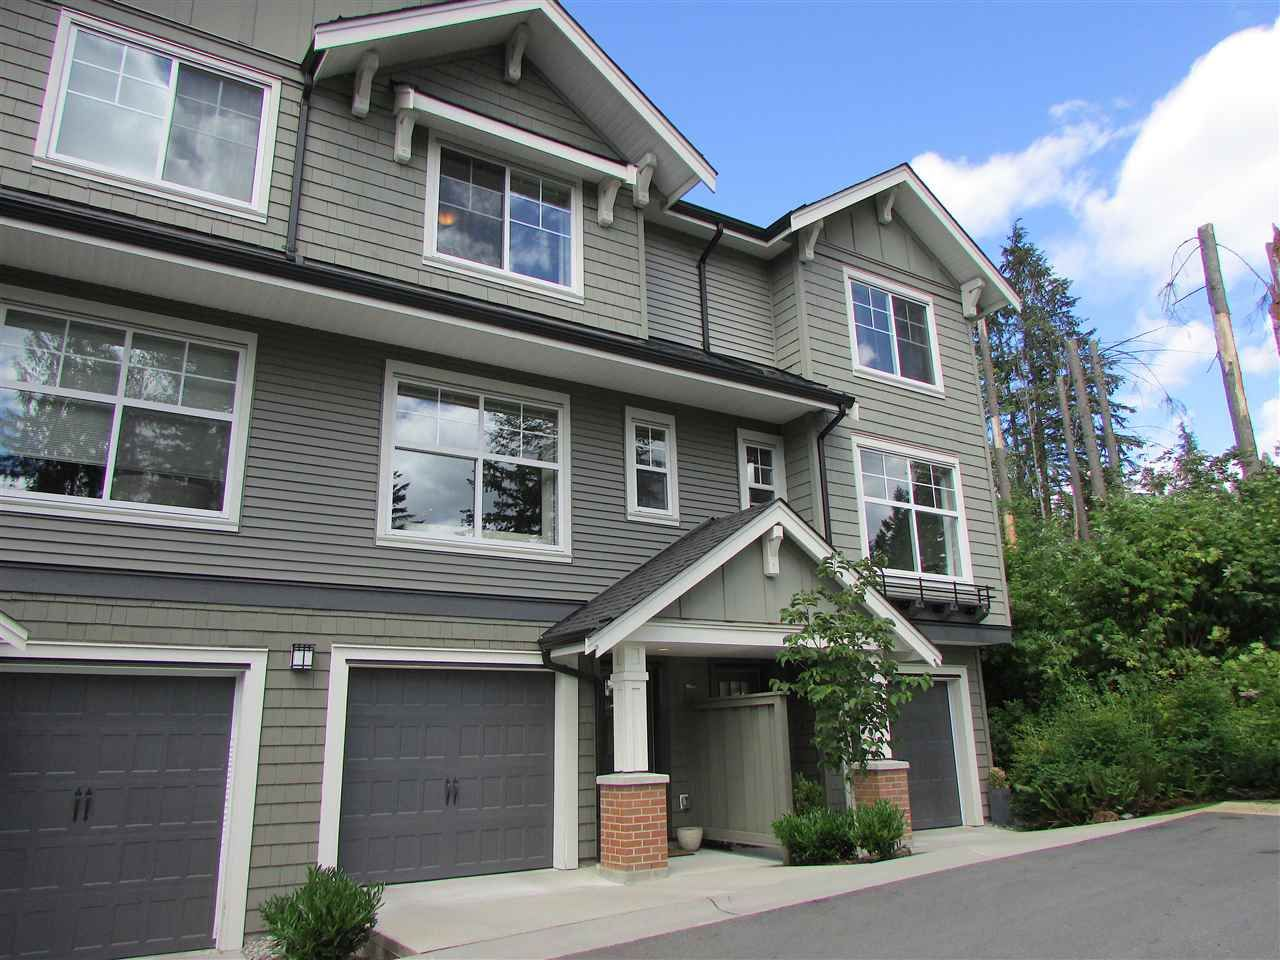 """Main Photo: 18 3470 HIGHLAND Drive in Coquitlam: Burke Mountain Townhouse for sale in """"BRIDLEWOOD"""" : MLS®# R2181948"""